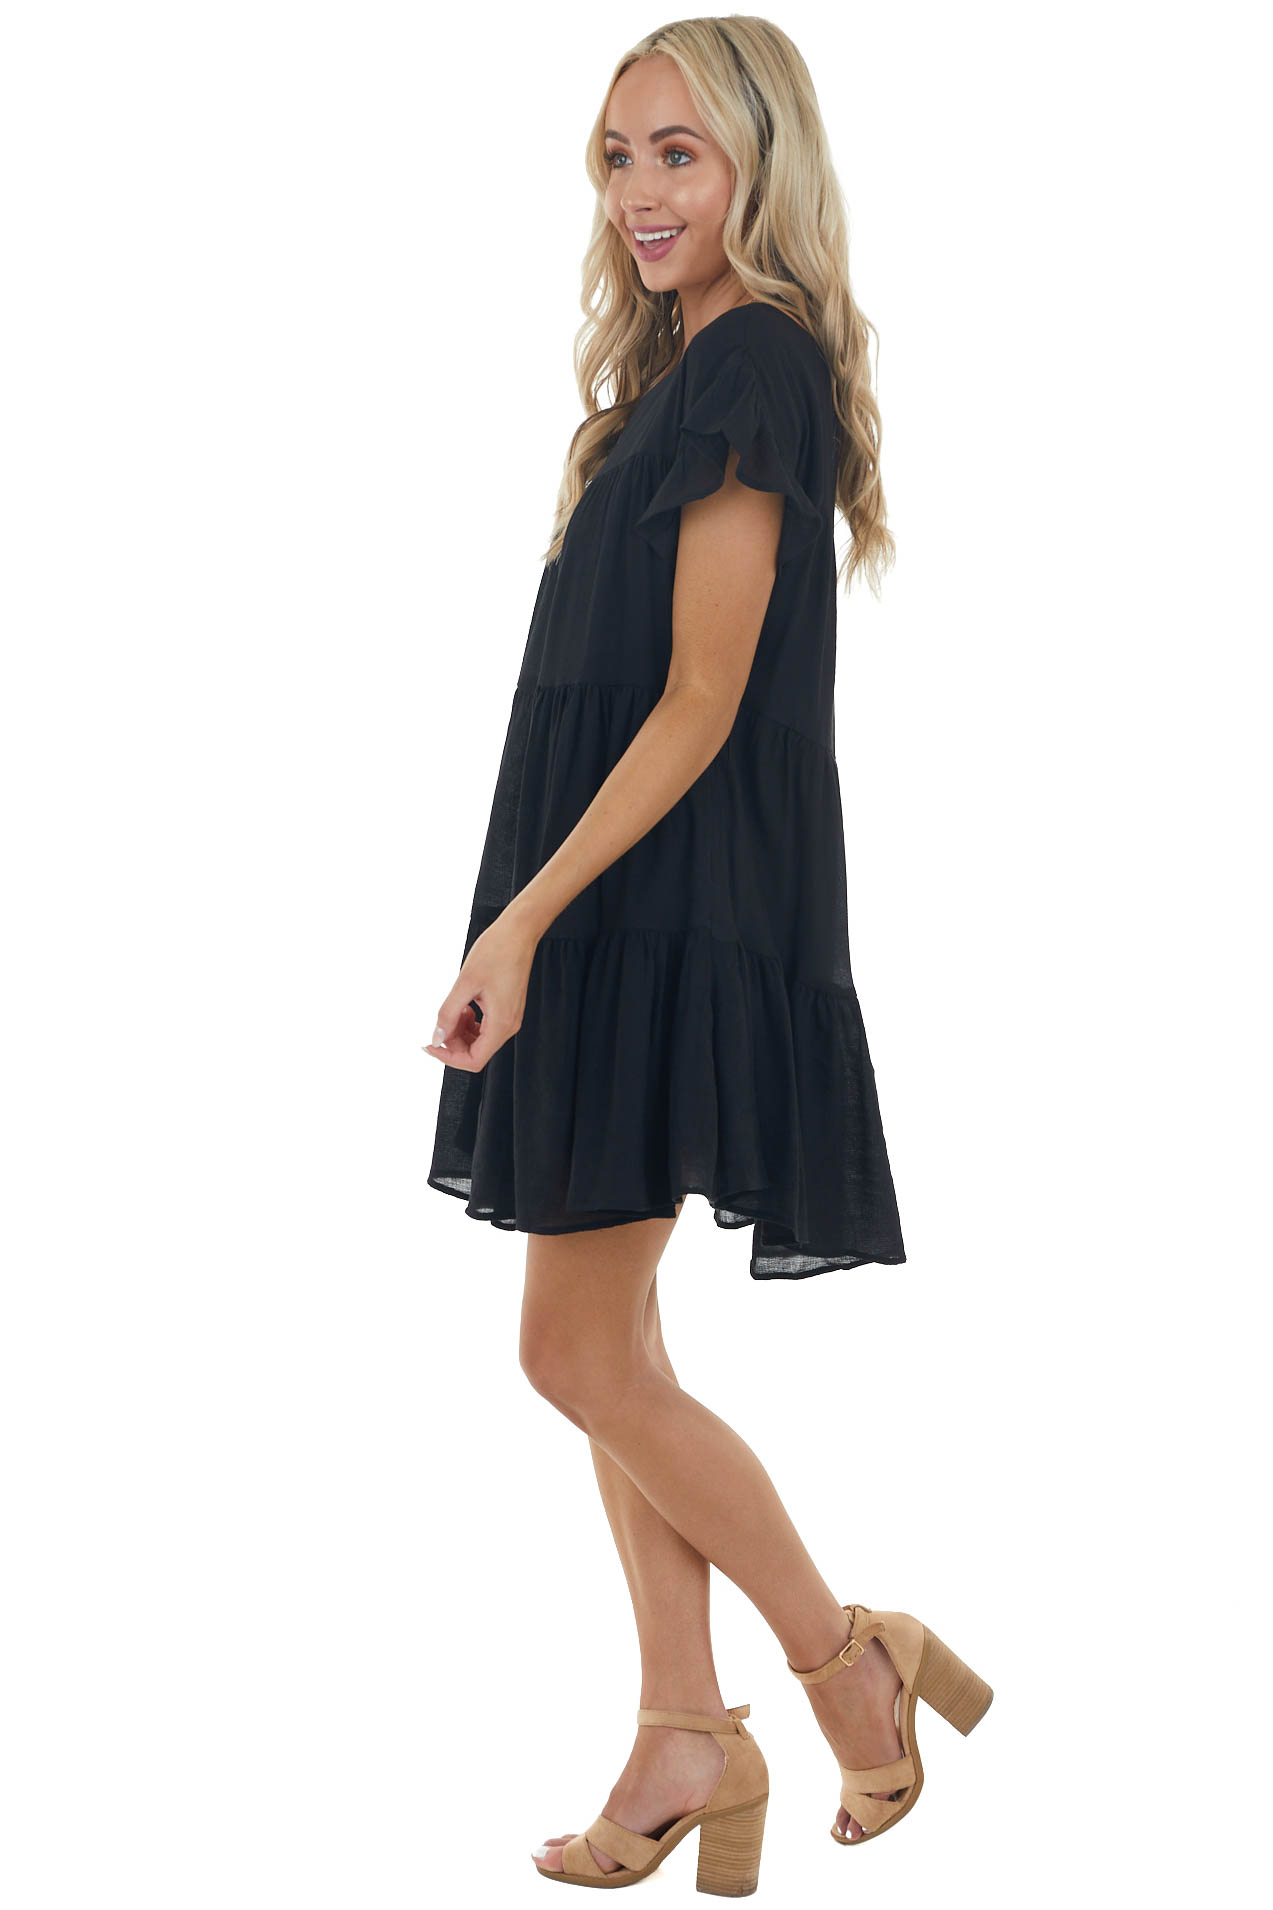 Black Tiered Babydoll Short Dress with Side Pockets